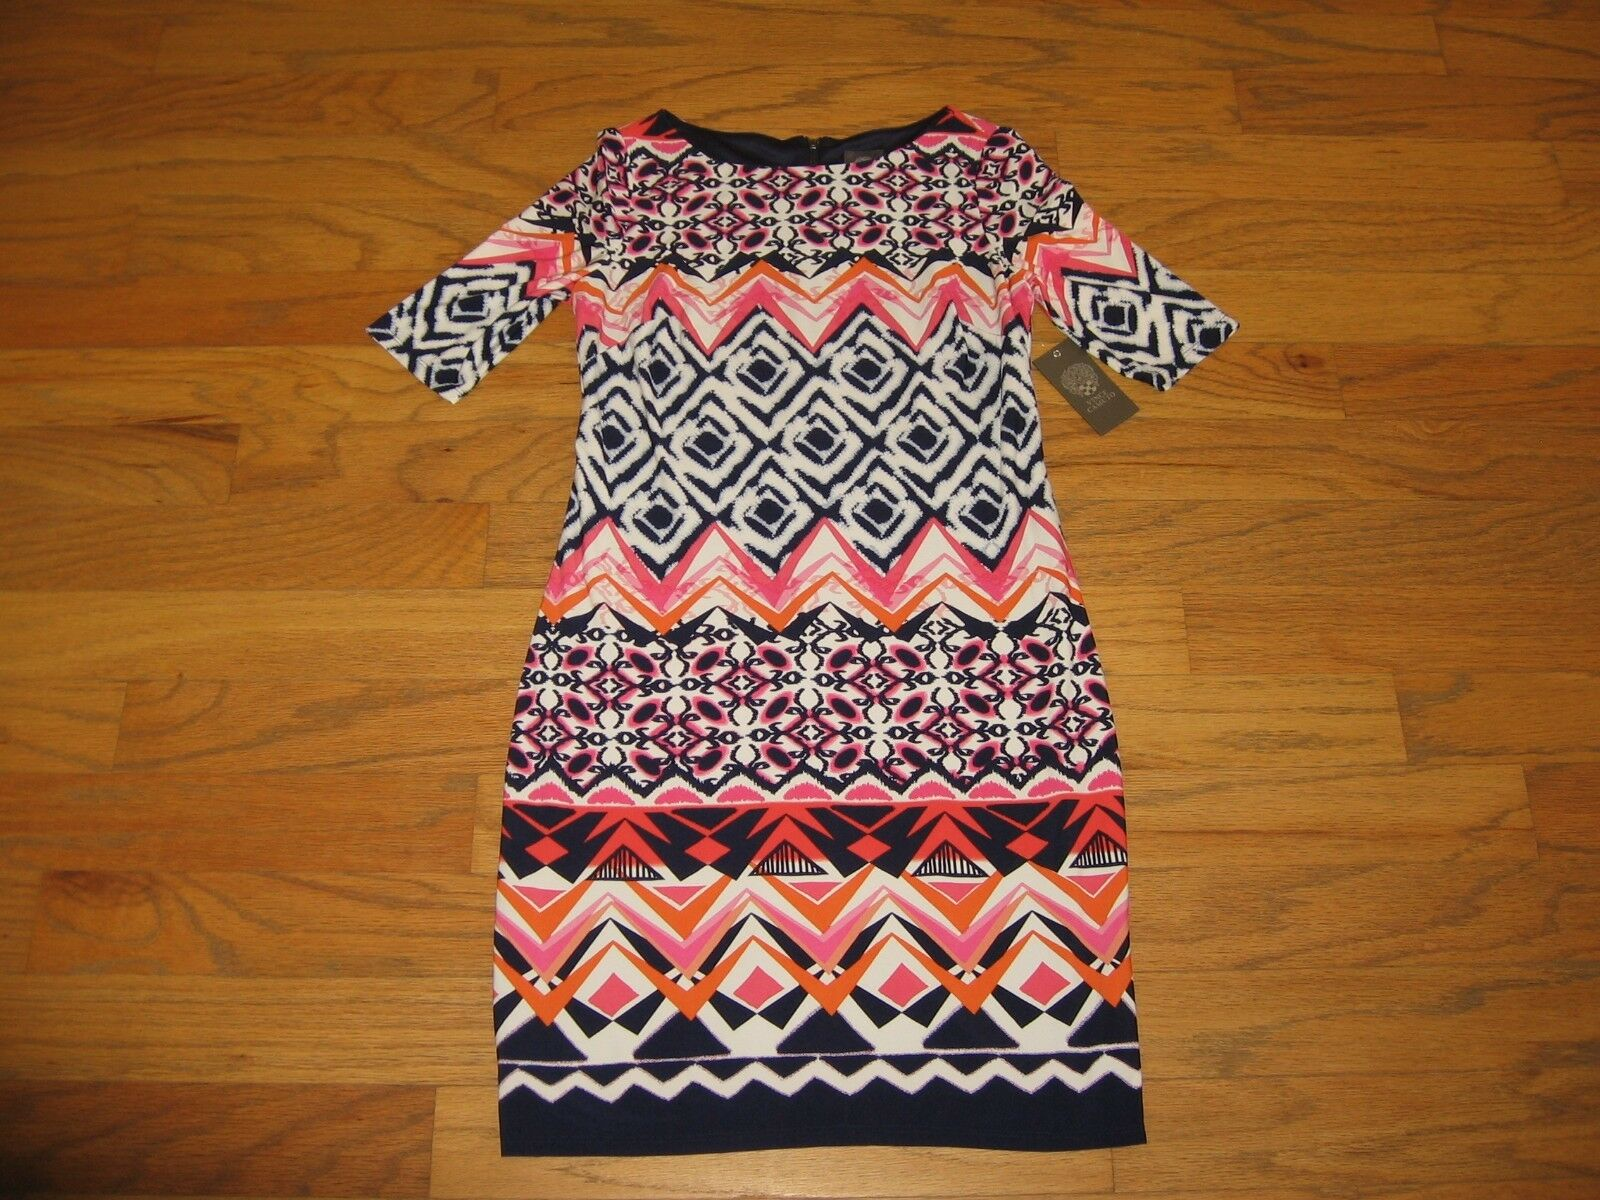 Vince Camuto Printed Shift Dress Woman Size 4 NWT MSRP 128